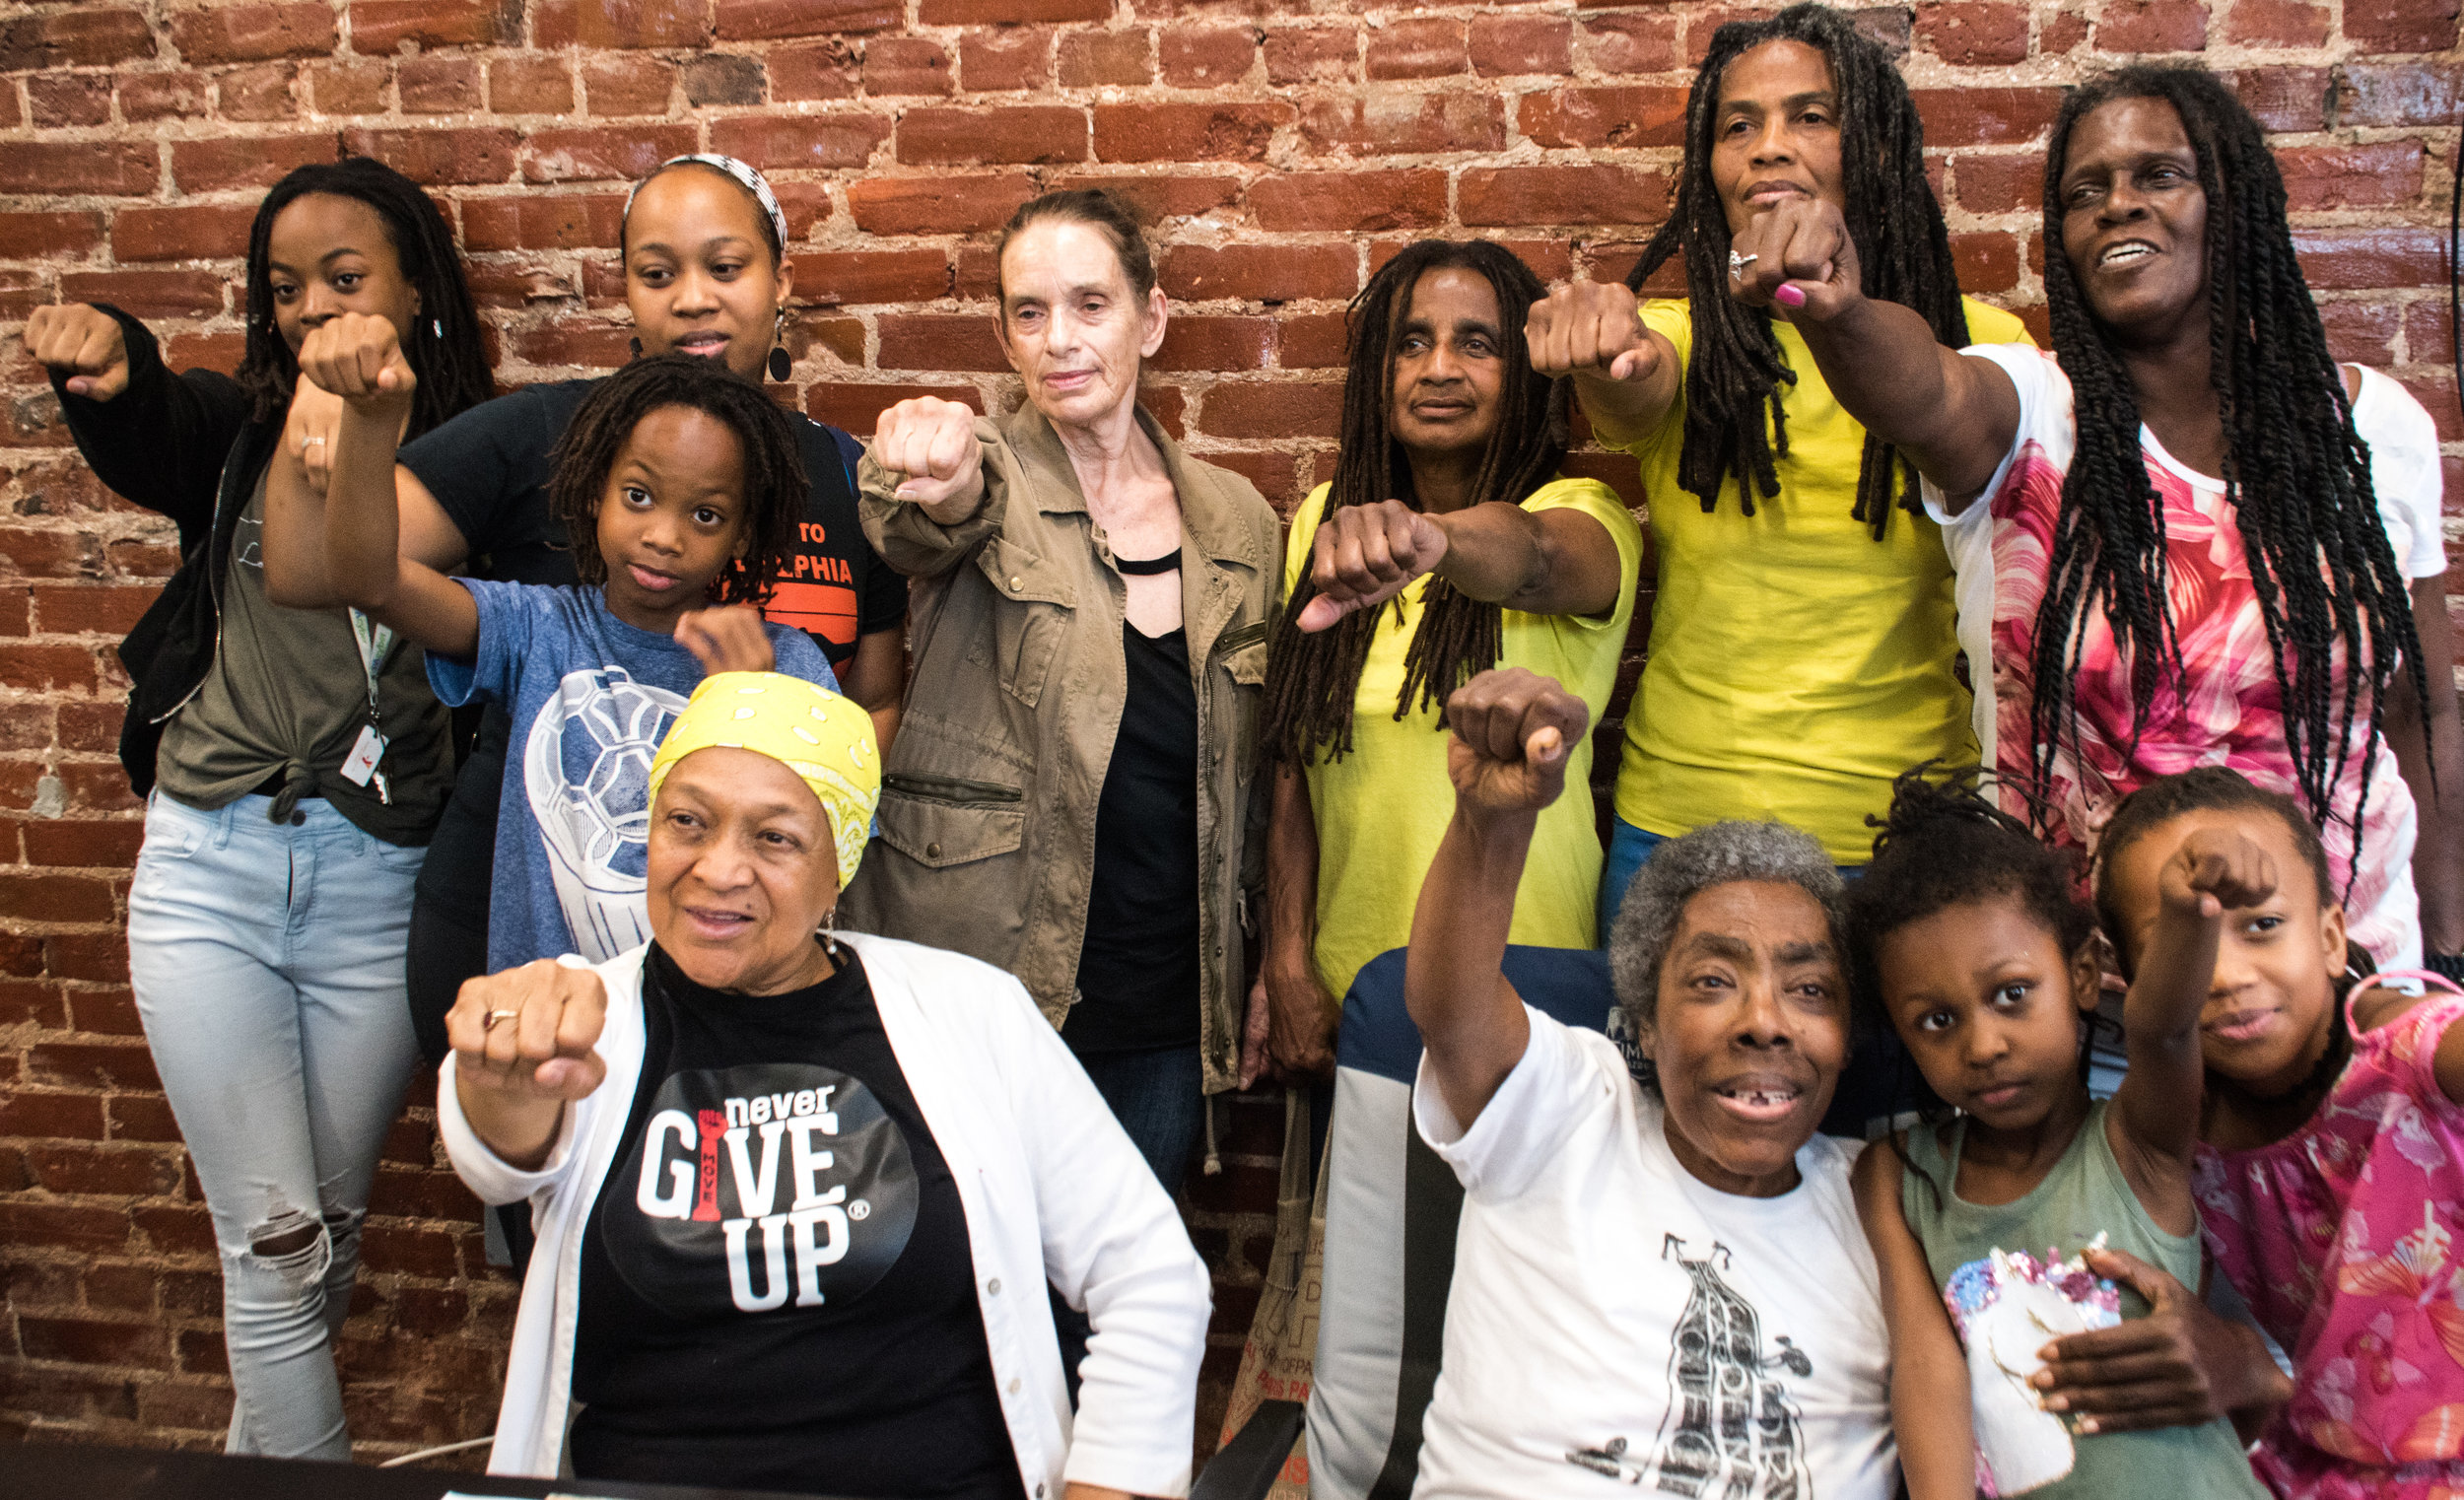 Newly released MOVE 9 members Janet and Janine Africa (in yellow shirts, L to R) with other MOVE members after May 30 press conference in Philadelphia. Photo; Joe Piette